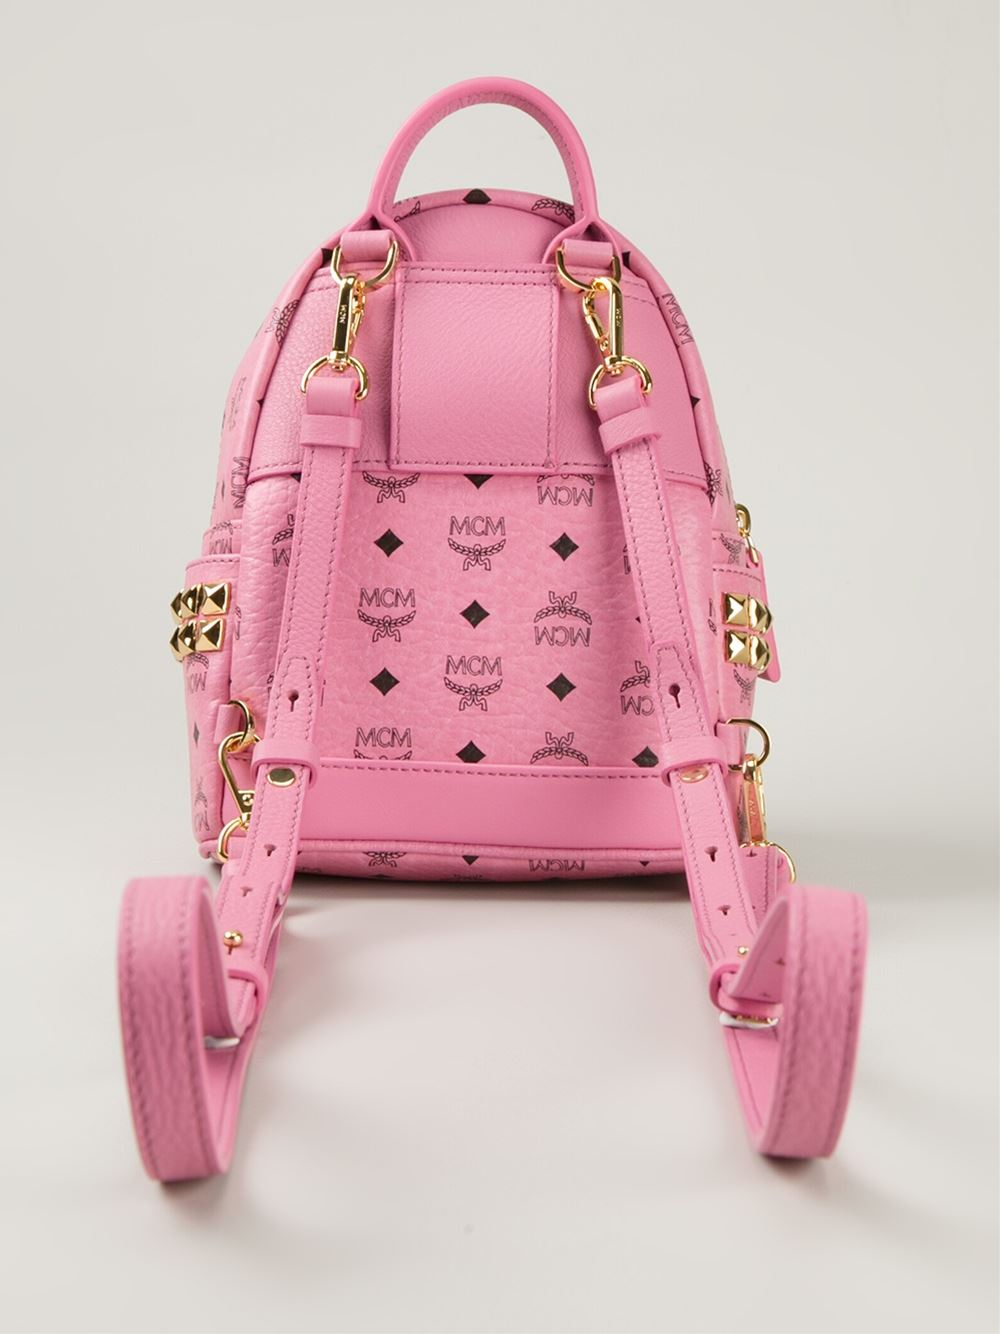 MCM Leather 'Bebe Boo' Backpack in Pink & Purple (Pink)